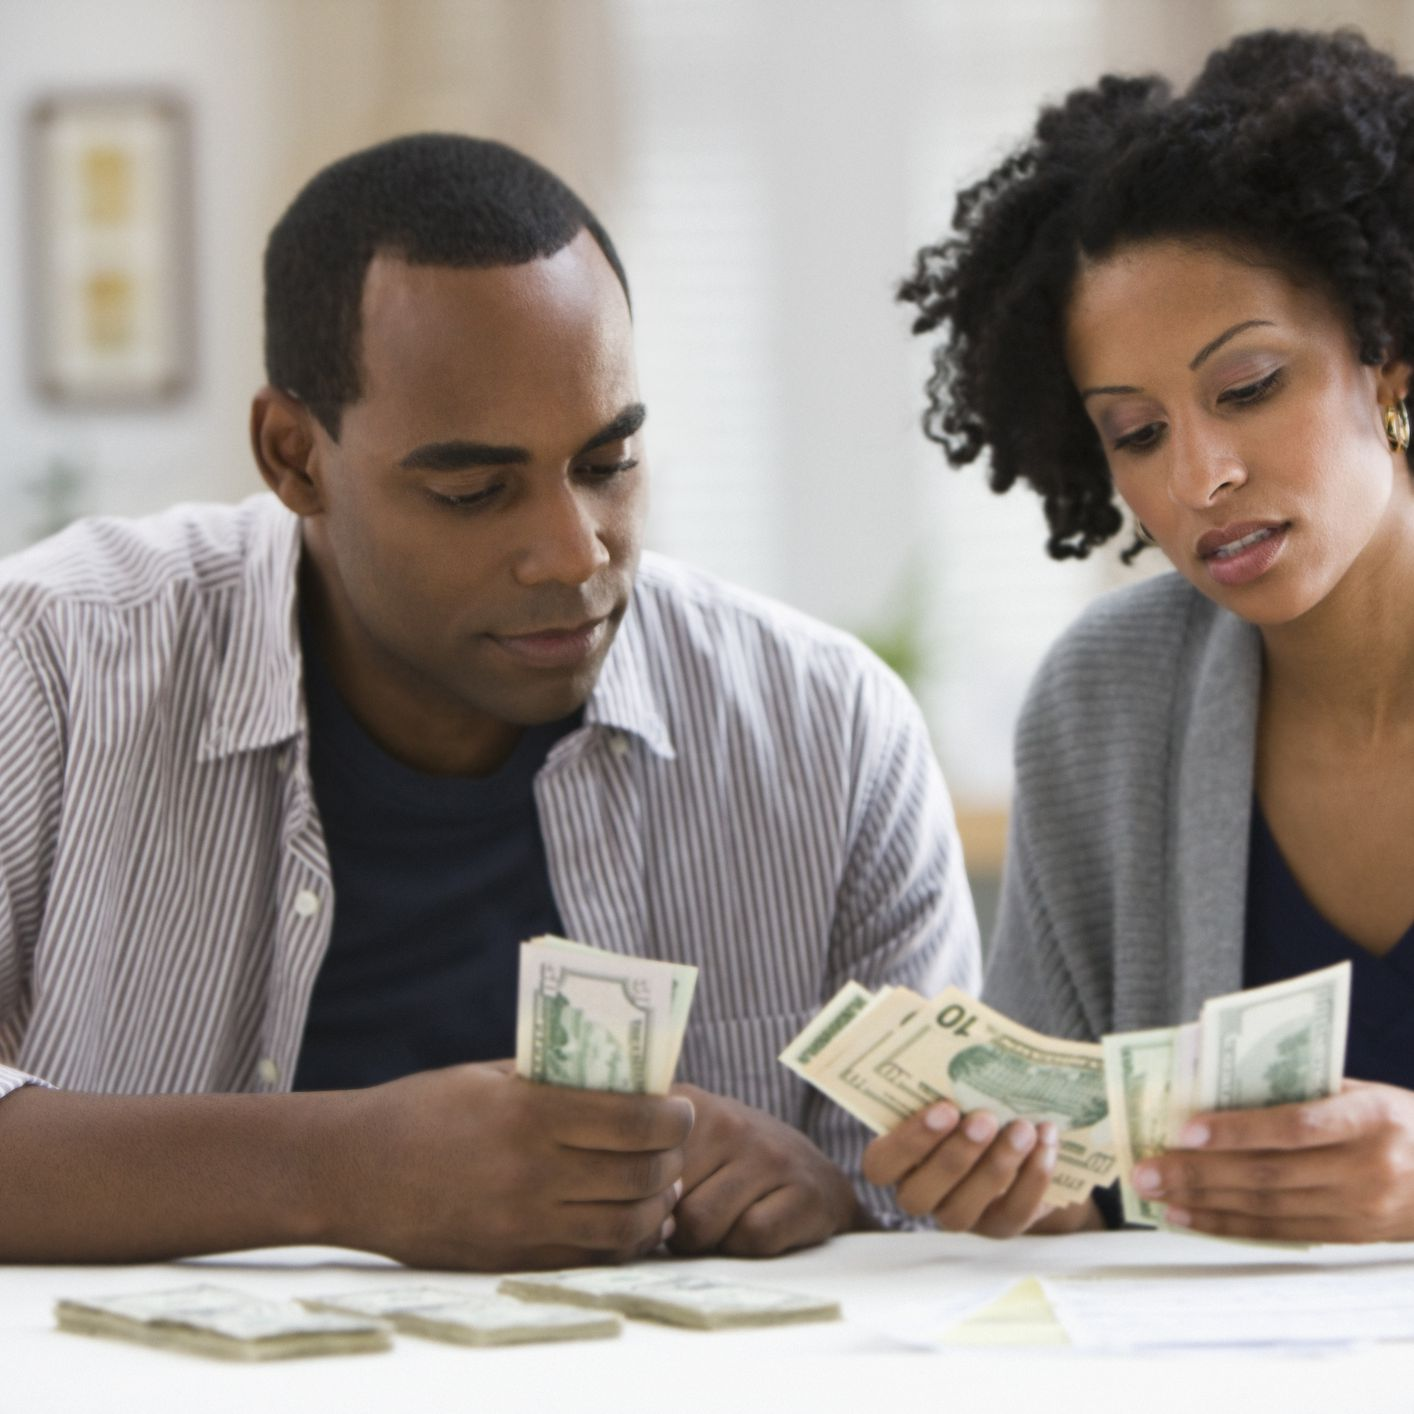 Image result for images of man and women couple finanicial